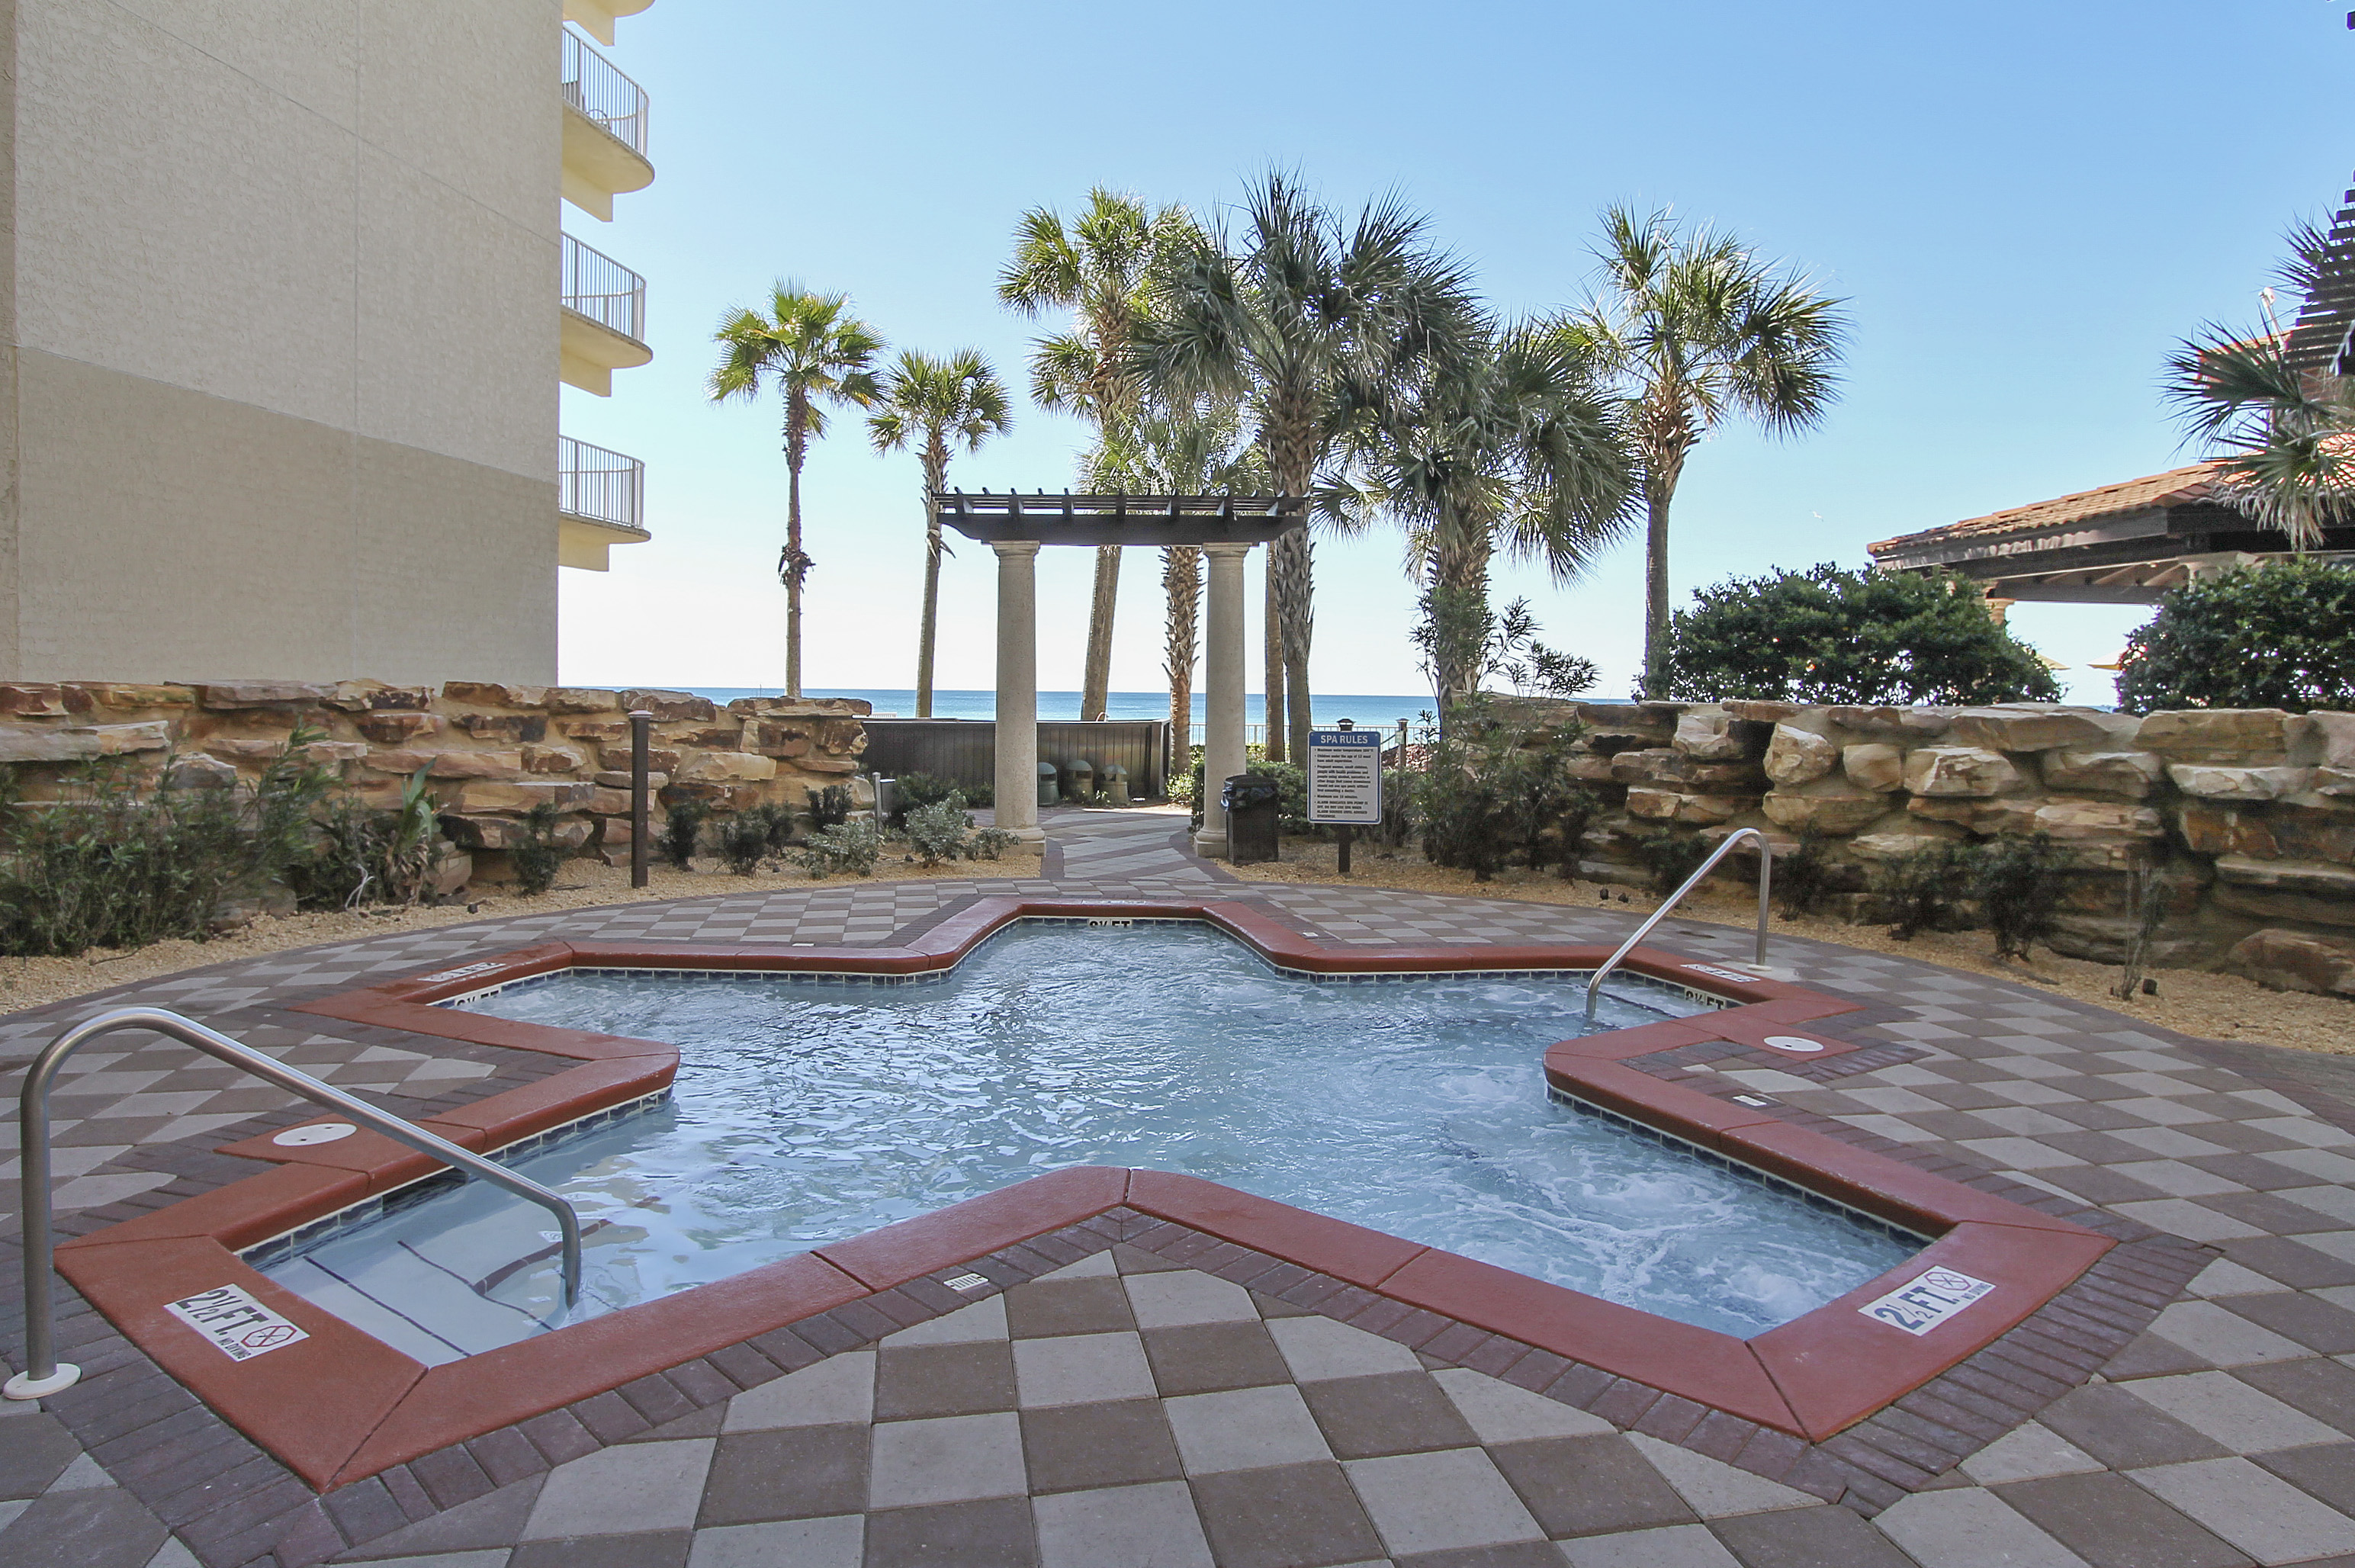 Melt your cares away in the hot tub at Shores of Panama Panama City Beach FL